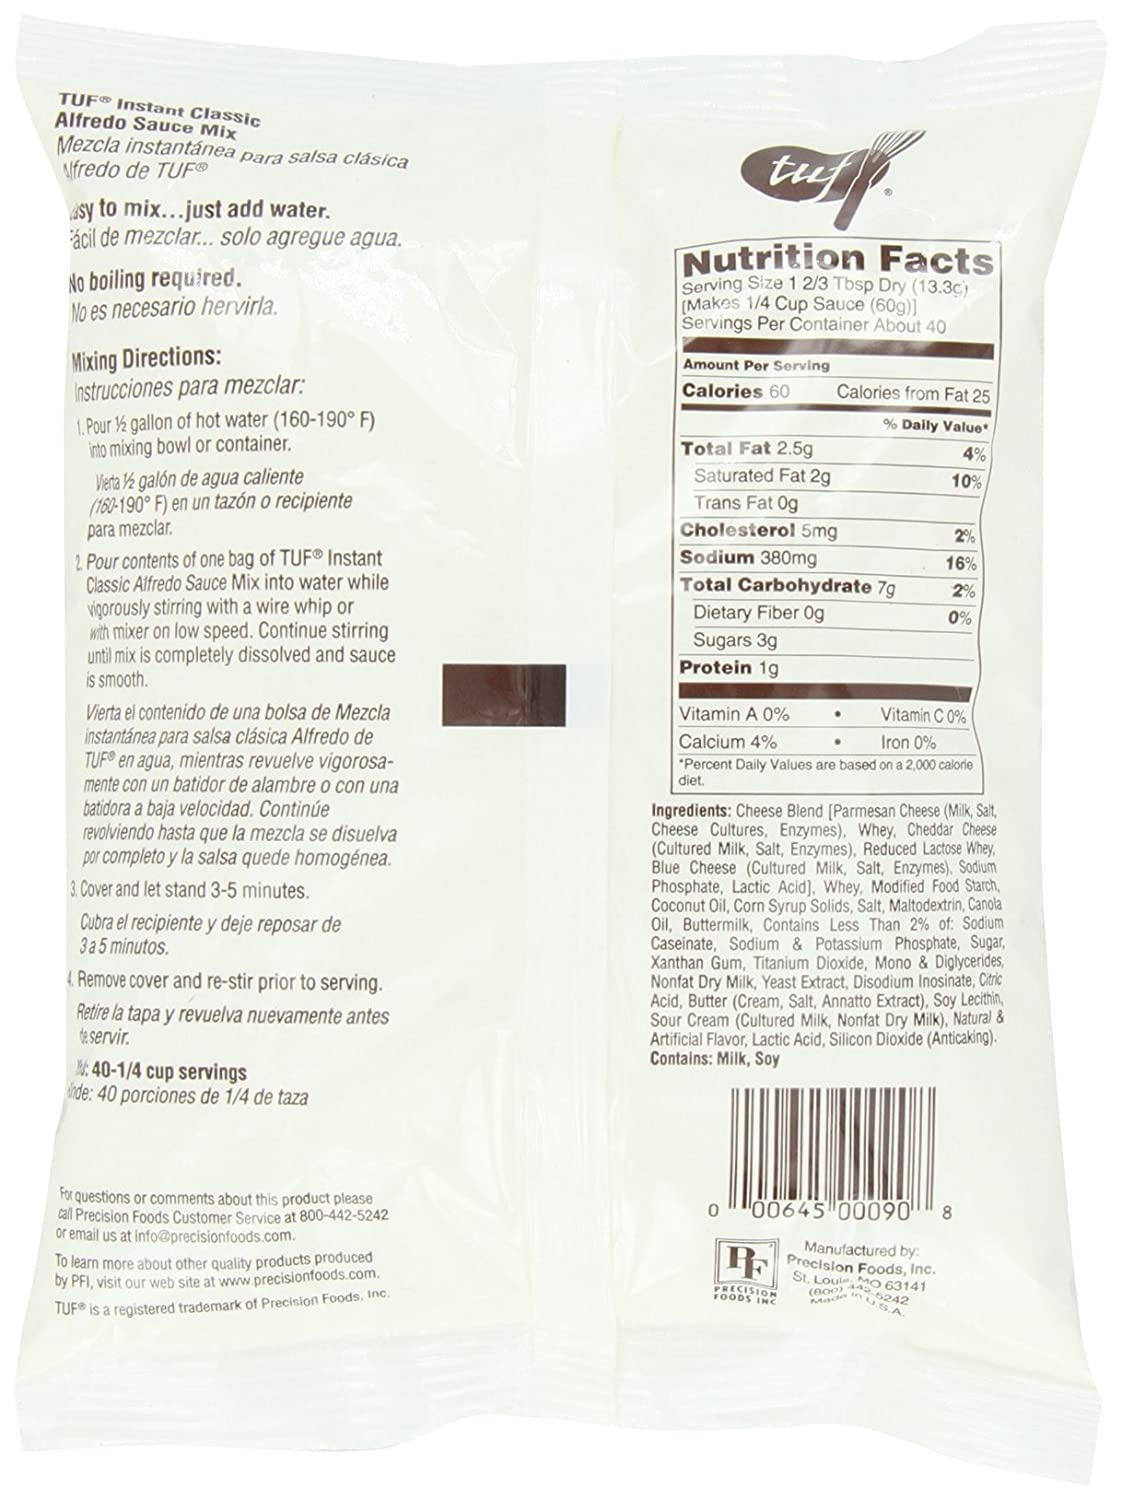 Amazon.com : Total Ultimate Foods Alfredo Sauce Mix, 19-Ounce Units (Pack of 4) : Grocery & Gourmet Food